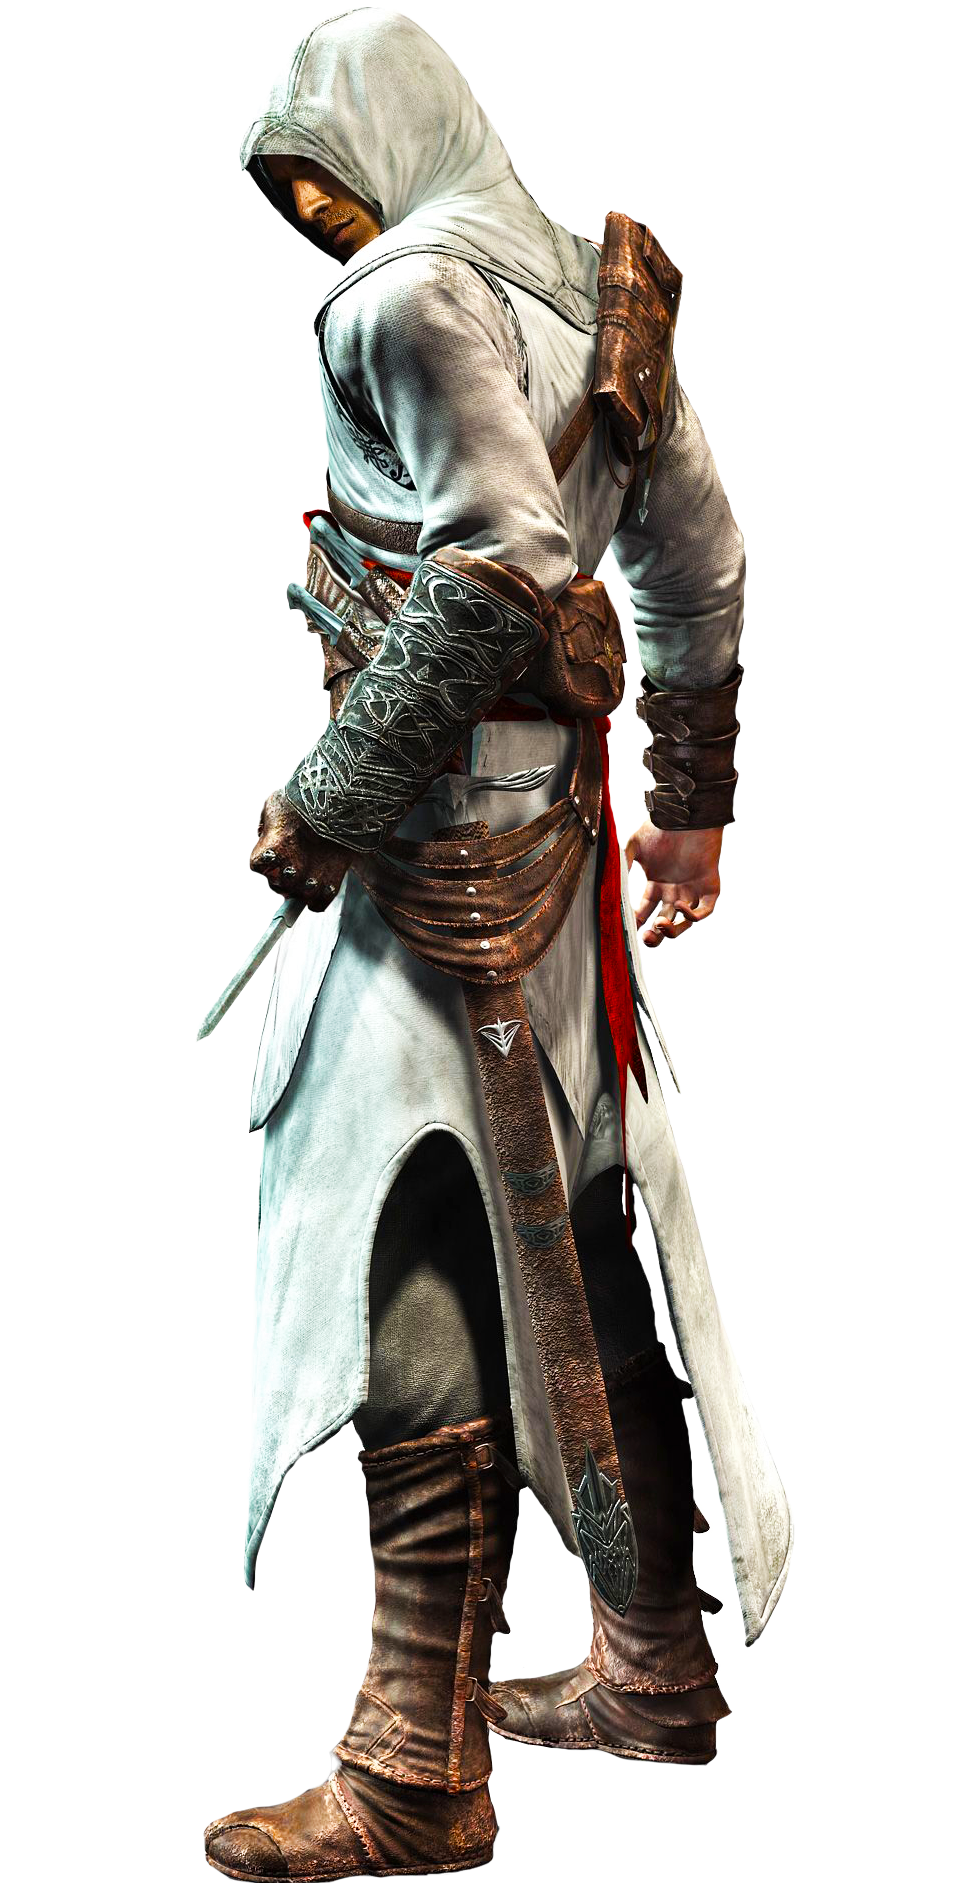 Altair Assassins Creed PNG Transparent Image - Assassins Creed HD PNG